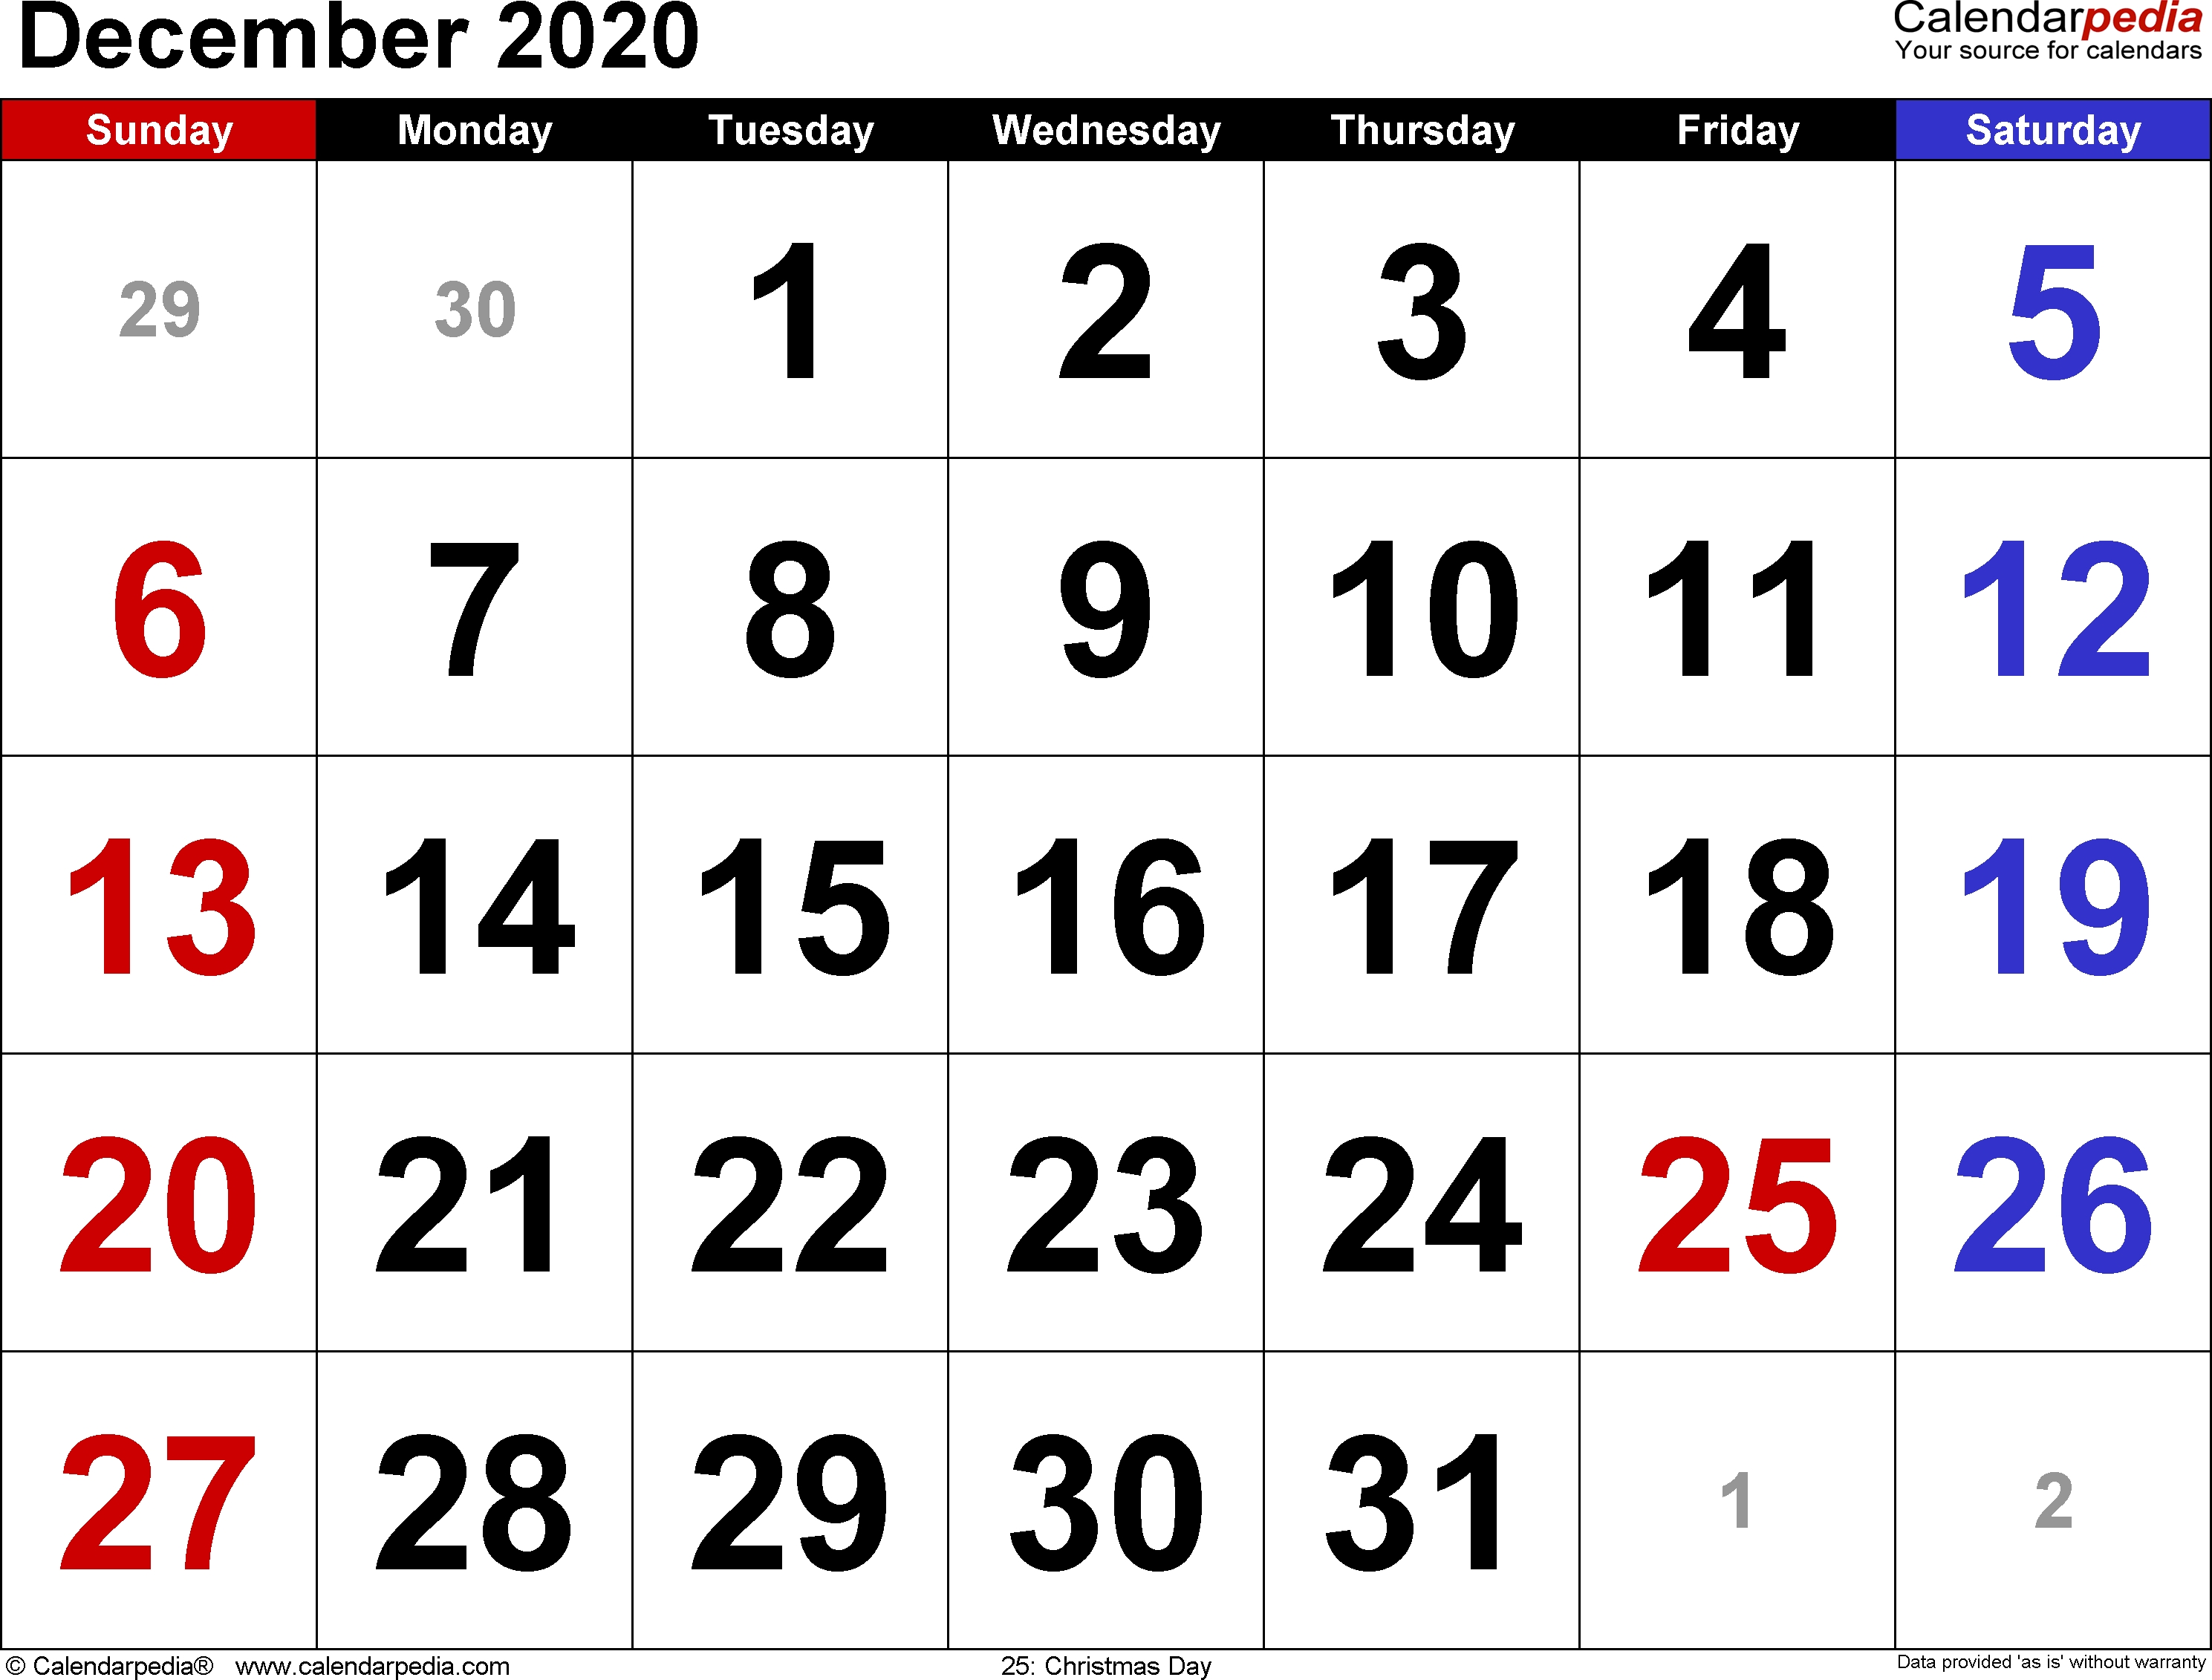 December 2020 Calendars For Word, Excel & Pdf-Monthly Calendar August Through December 2020